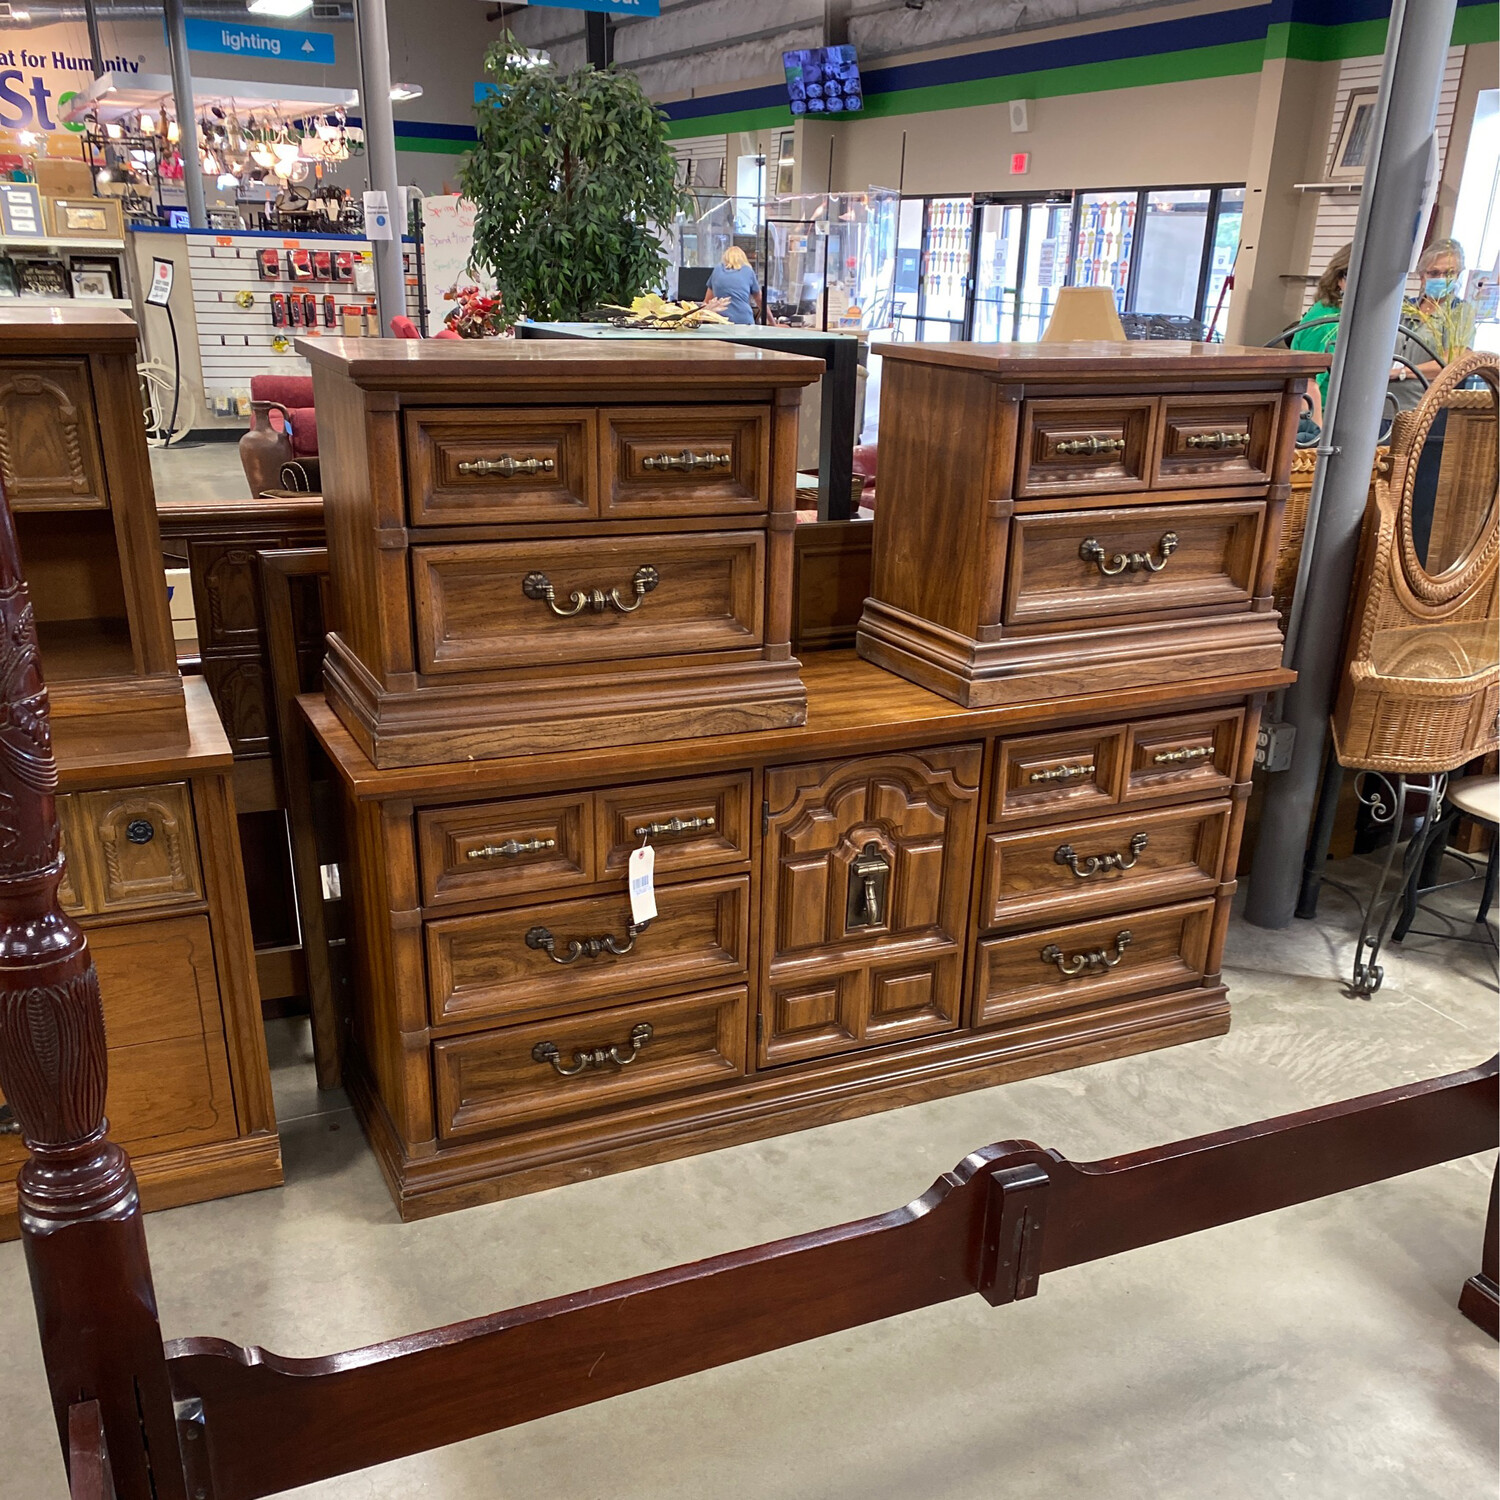 CLEARANCE KING HB, DRESSER, 2 NIGHTSTANDS